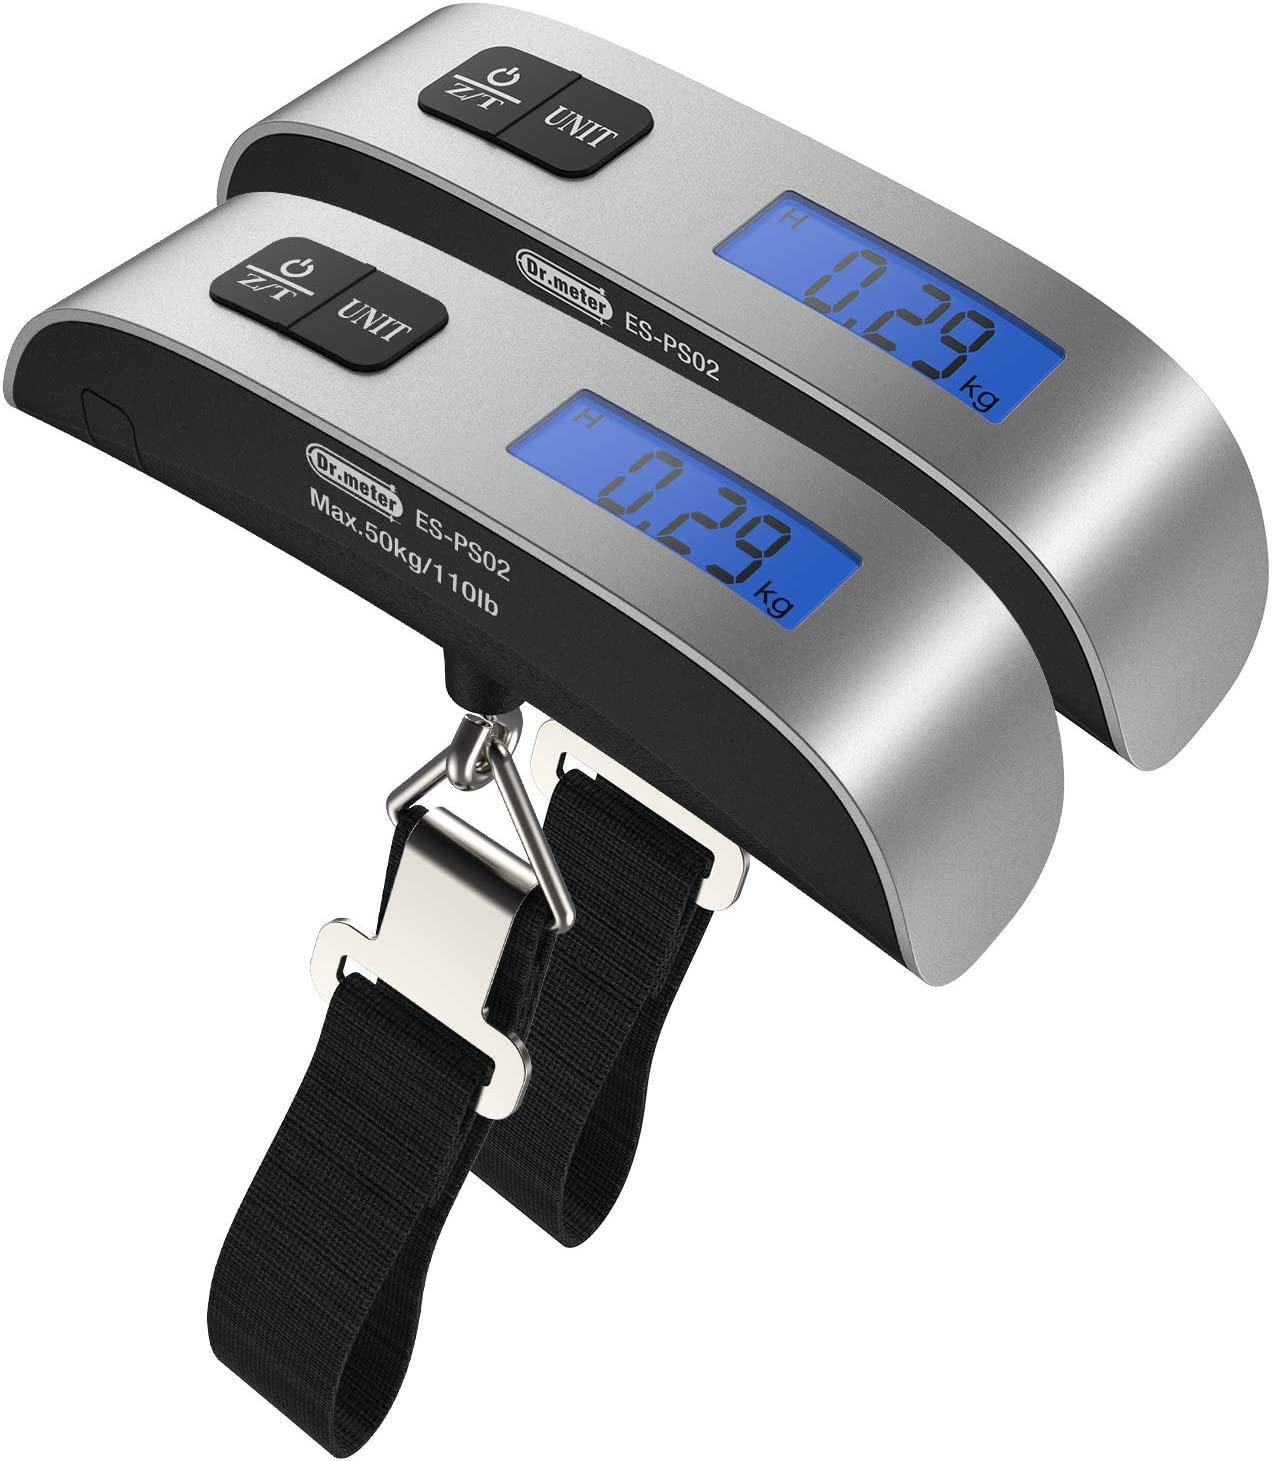 2 Packs of 110lb/50kg Luggage Scale, Dr.meter Backlit LCD Display Electronic Balance Digital Hanging Scale with Rubber Paint Handle, Temperature Sensor-Silver